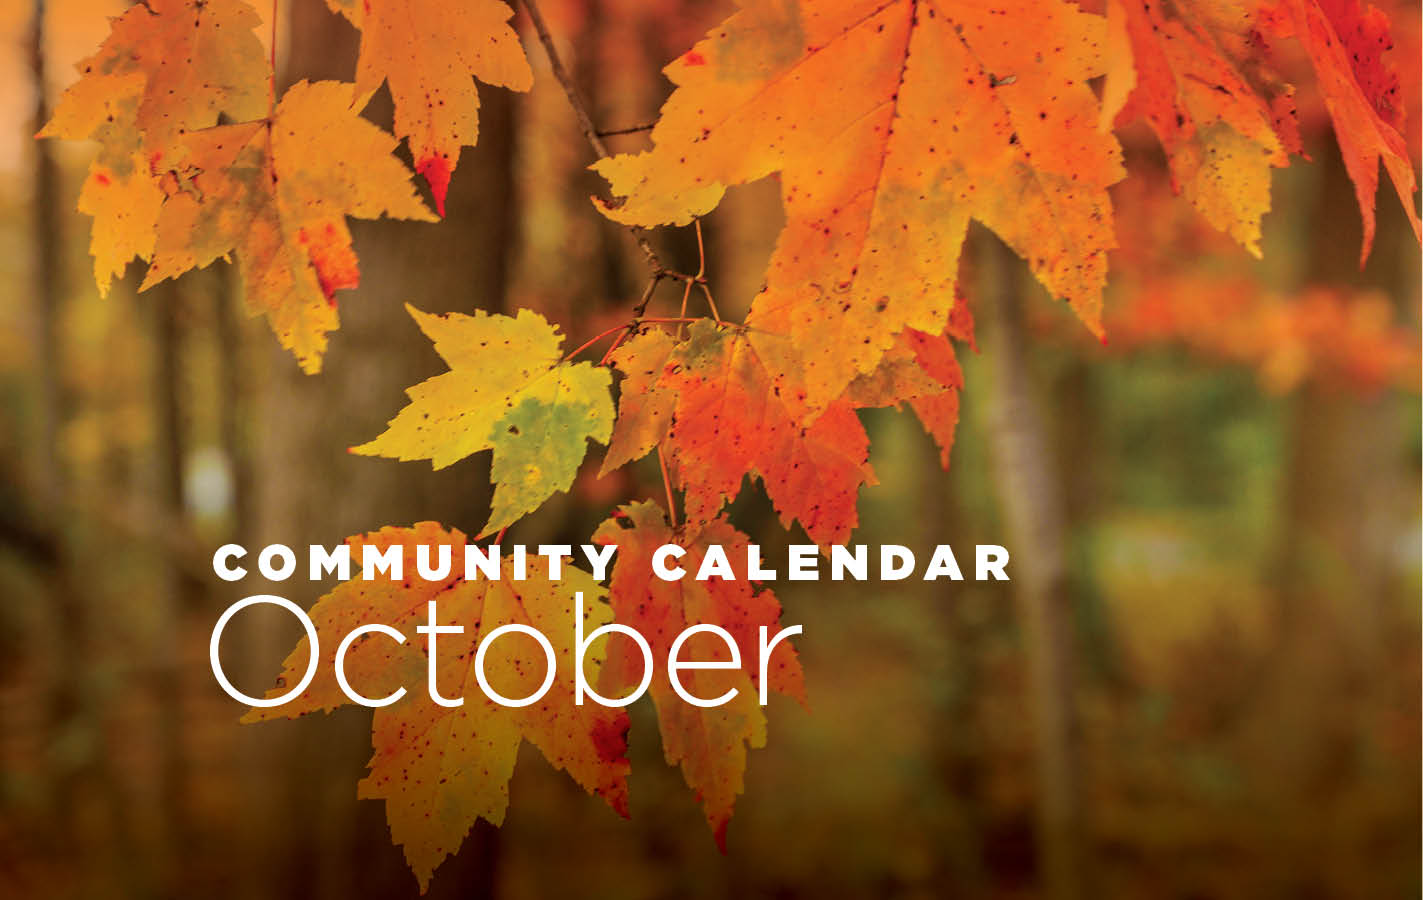 Community Calendar for October 2019